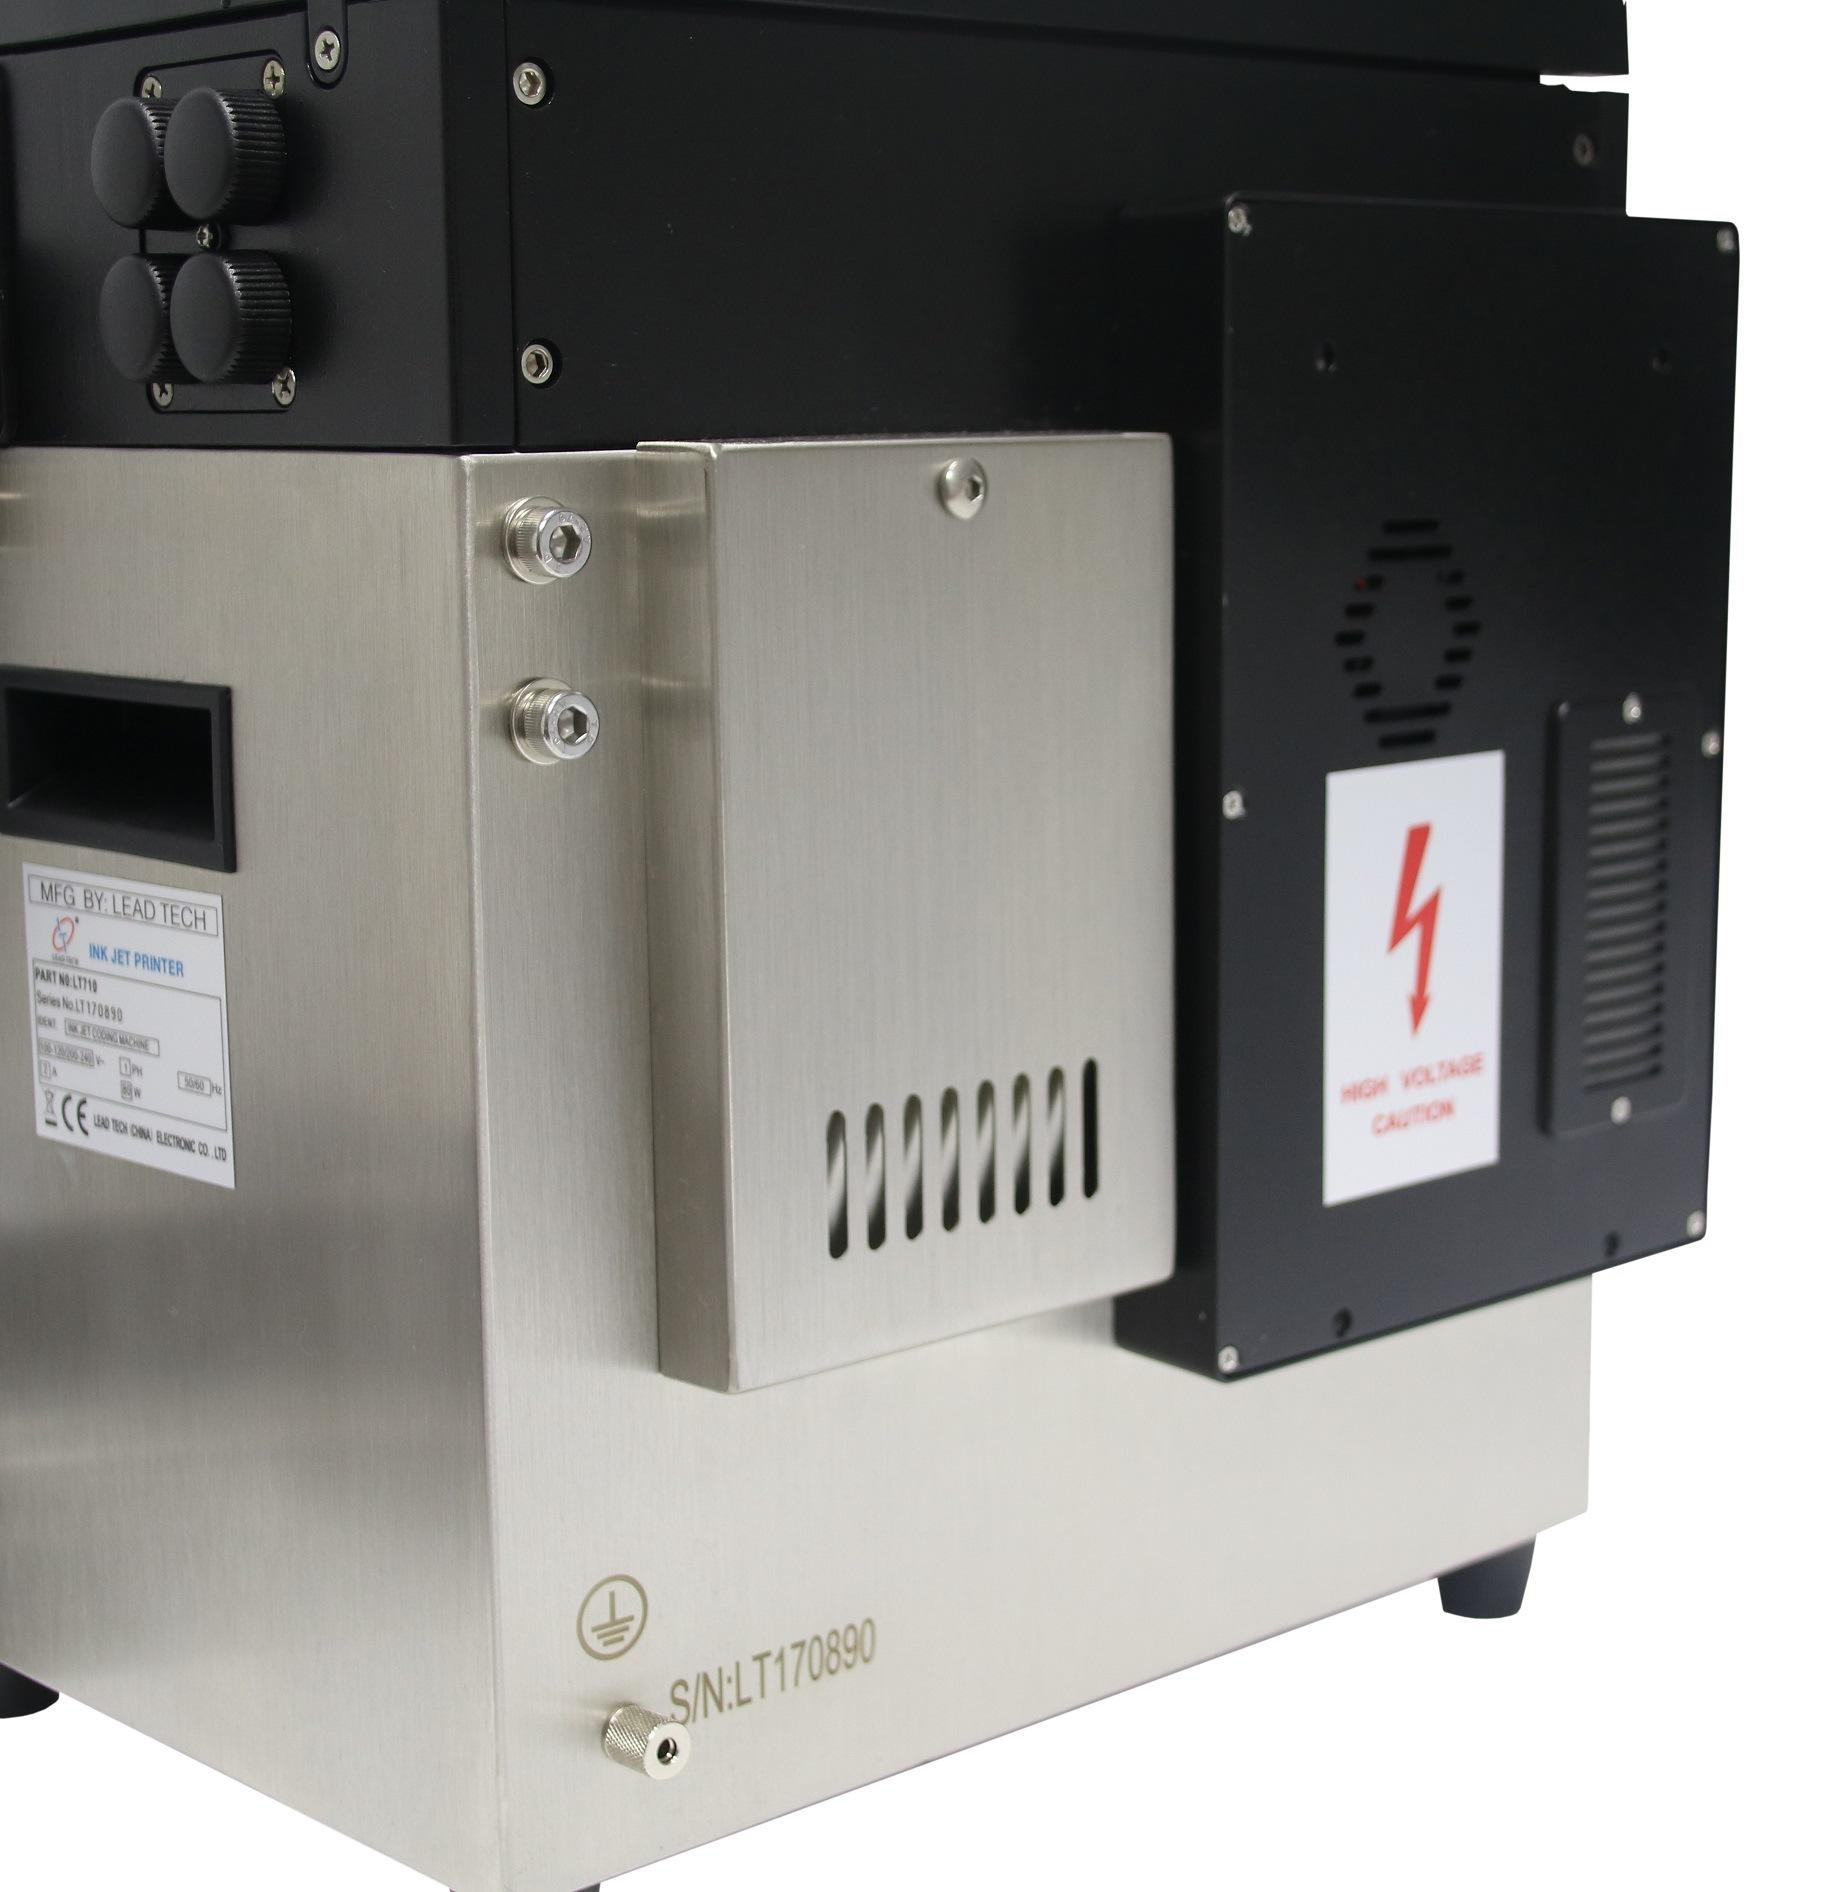 Lead Tech Lt760 Continuous Inkjet Printer for PE Pipe Coding